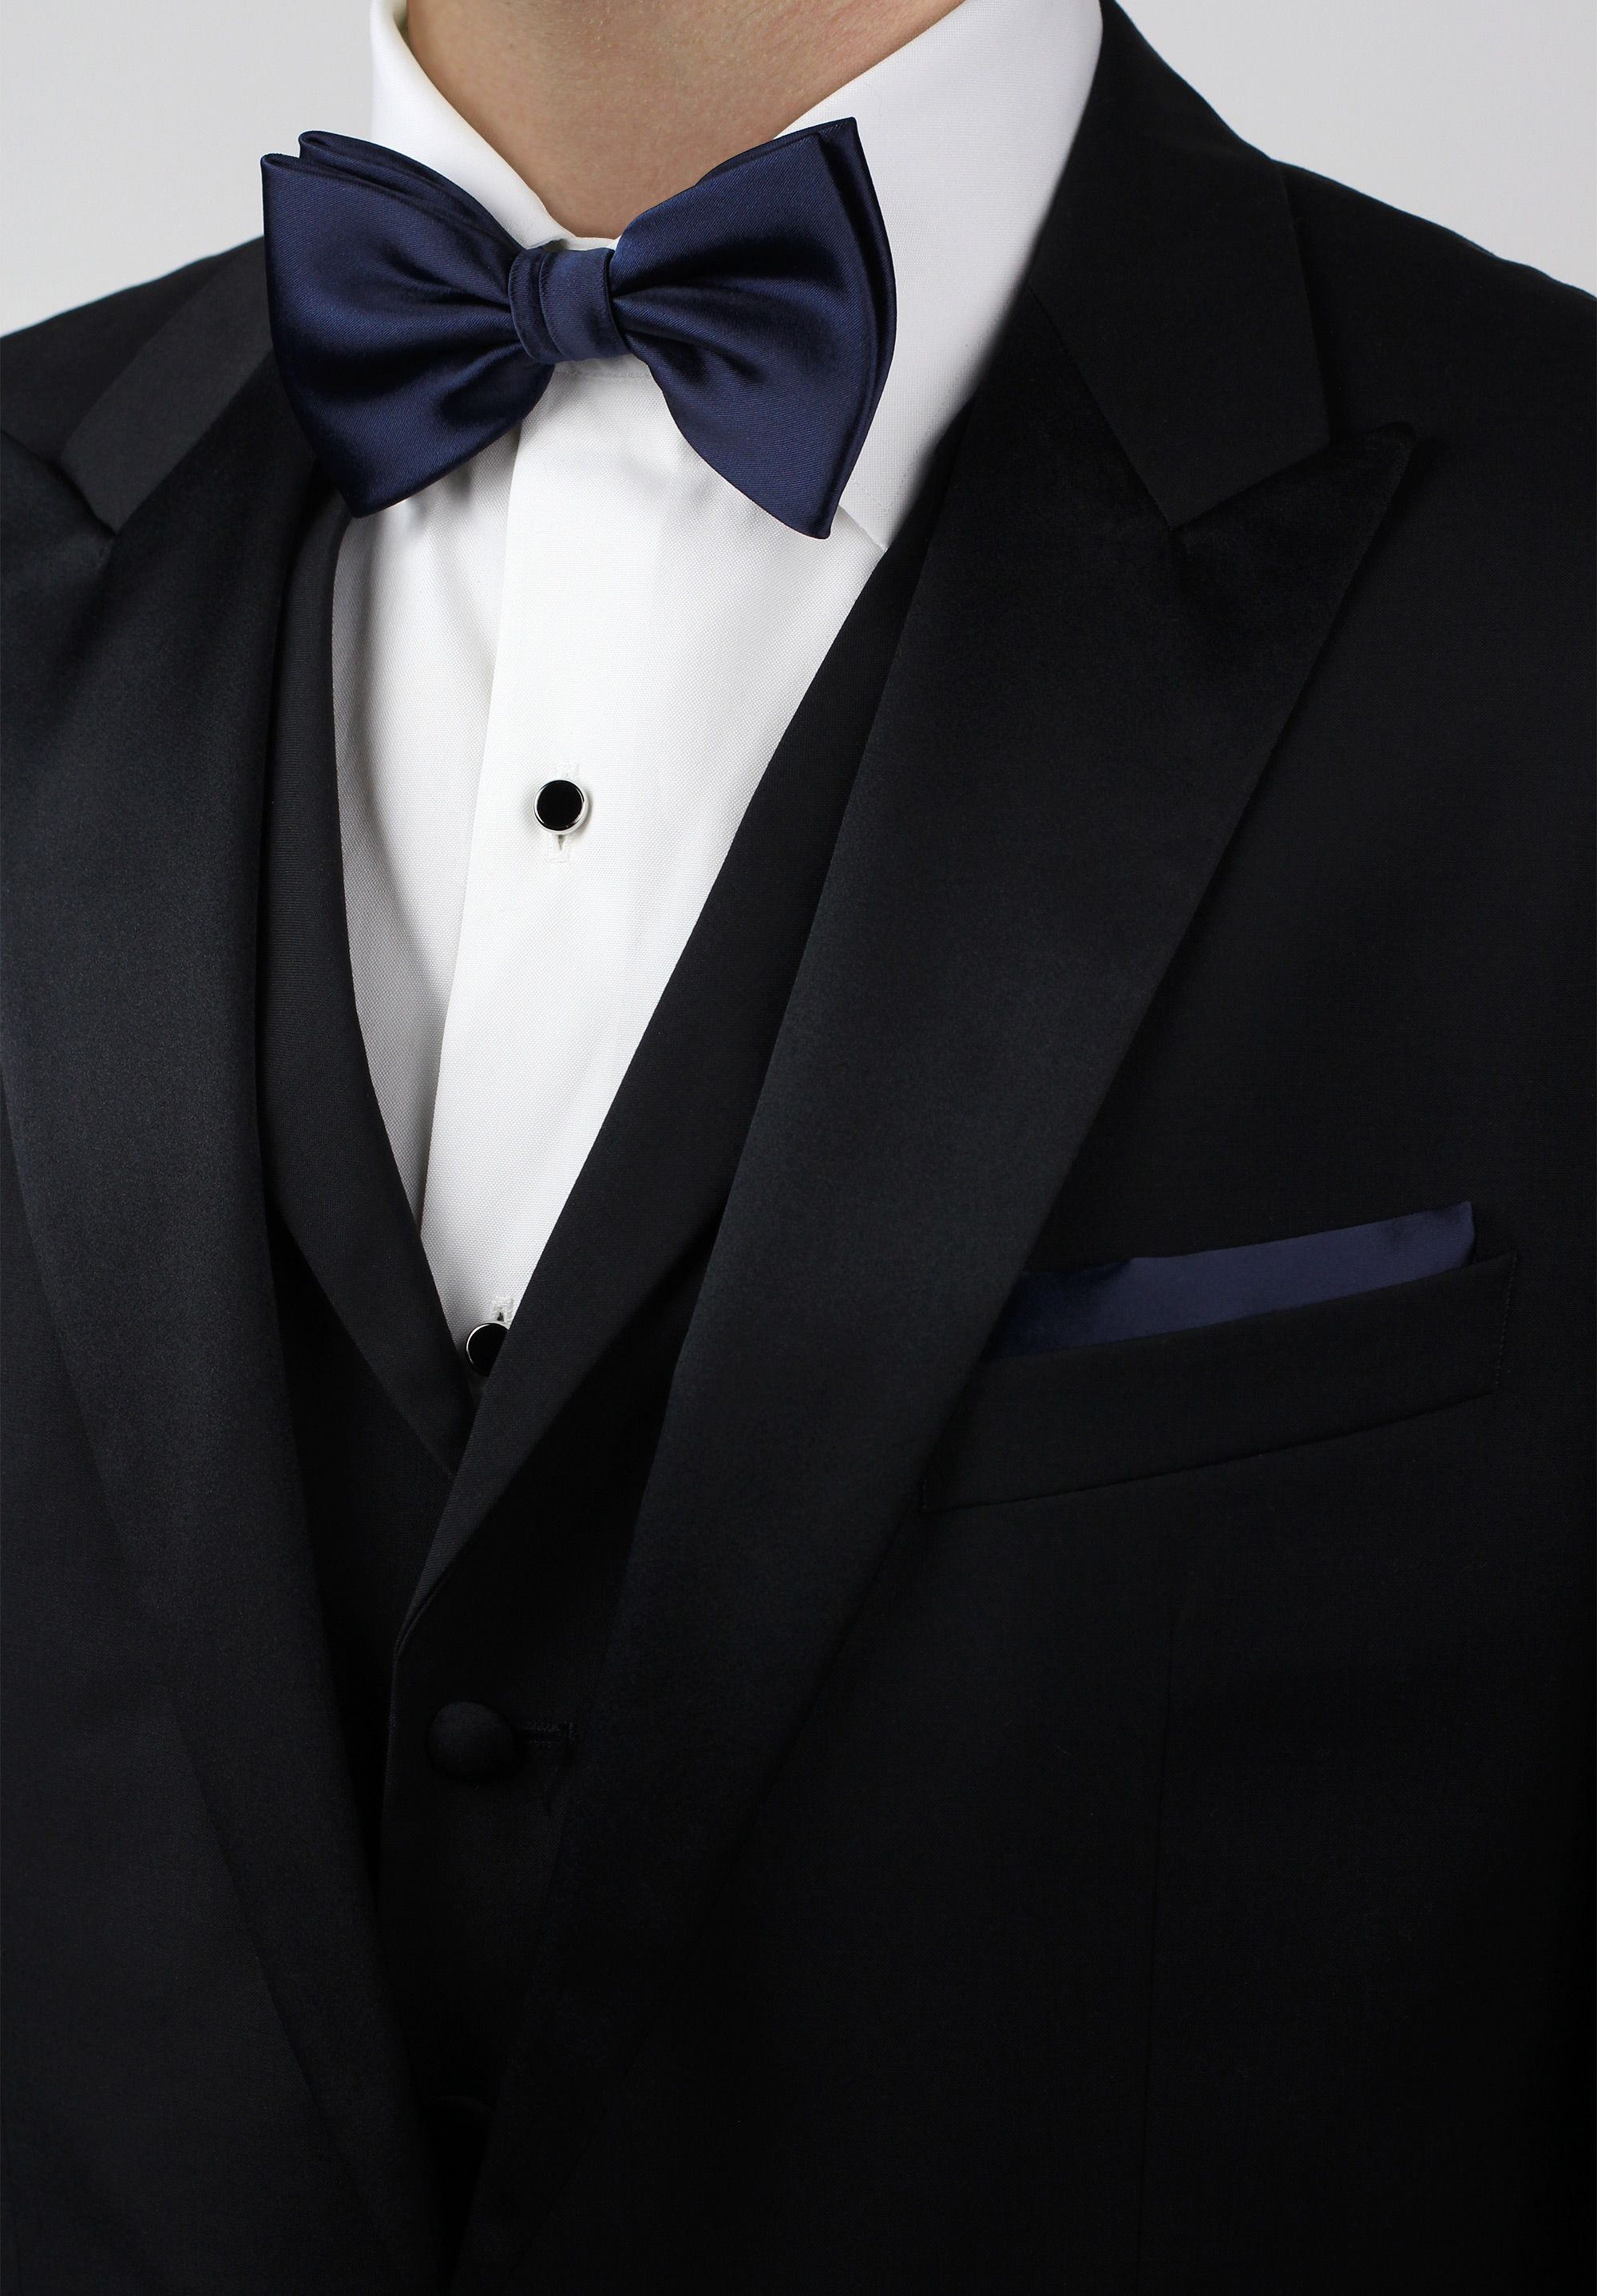 07df4a0458e7 Mens formal attire - black tuxedo with midnight blue bow tie and pocket  square